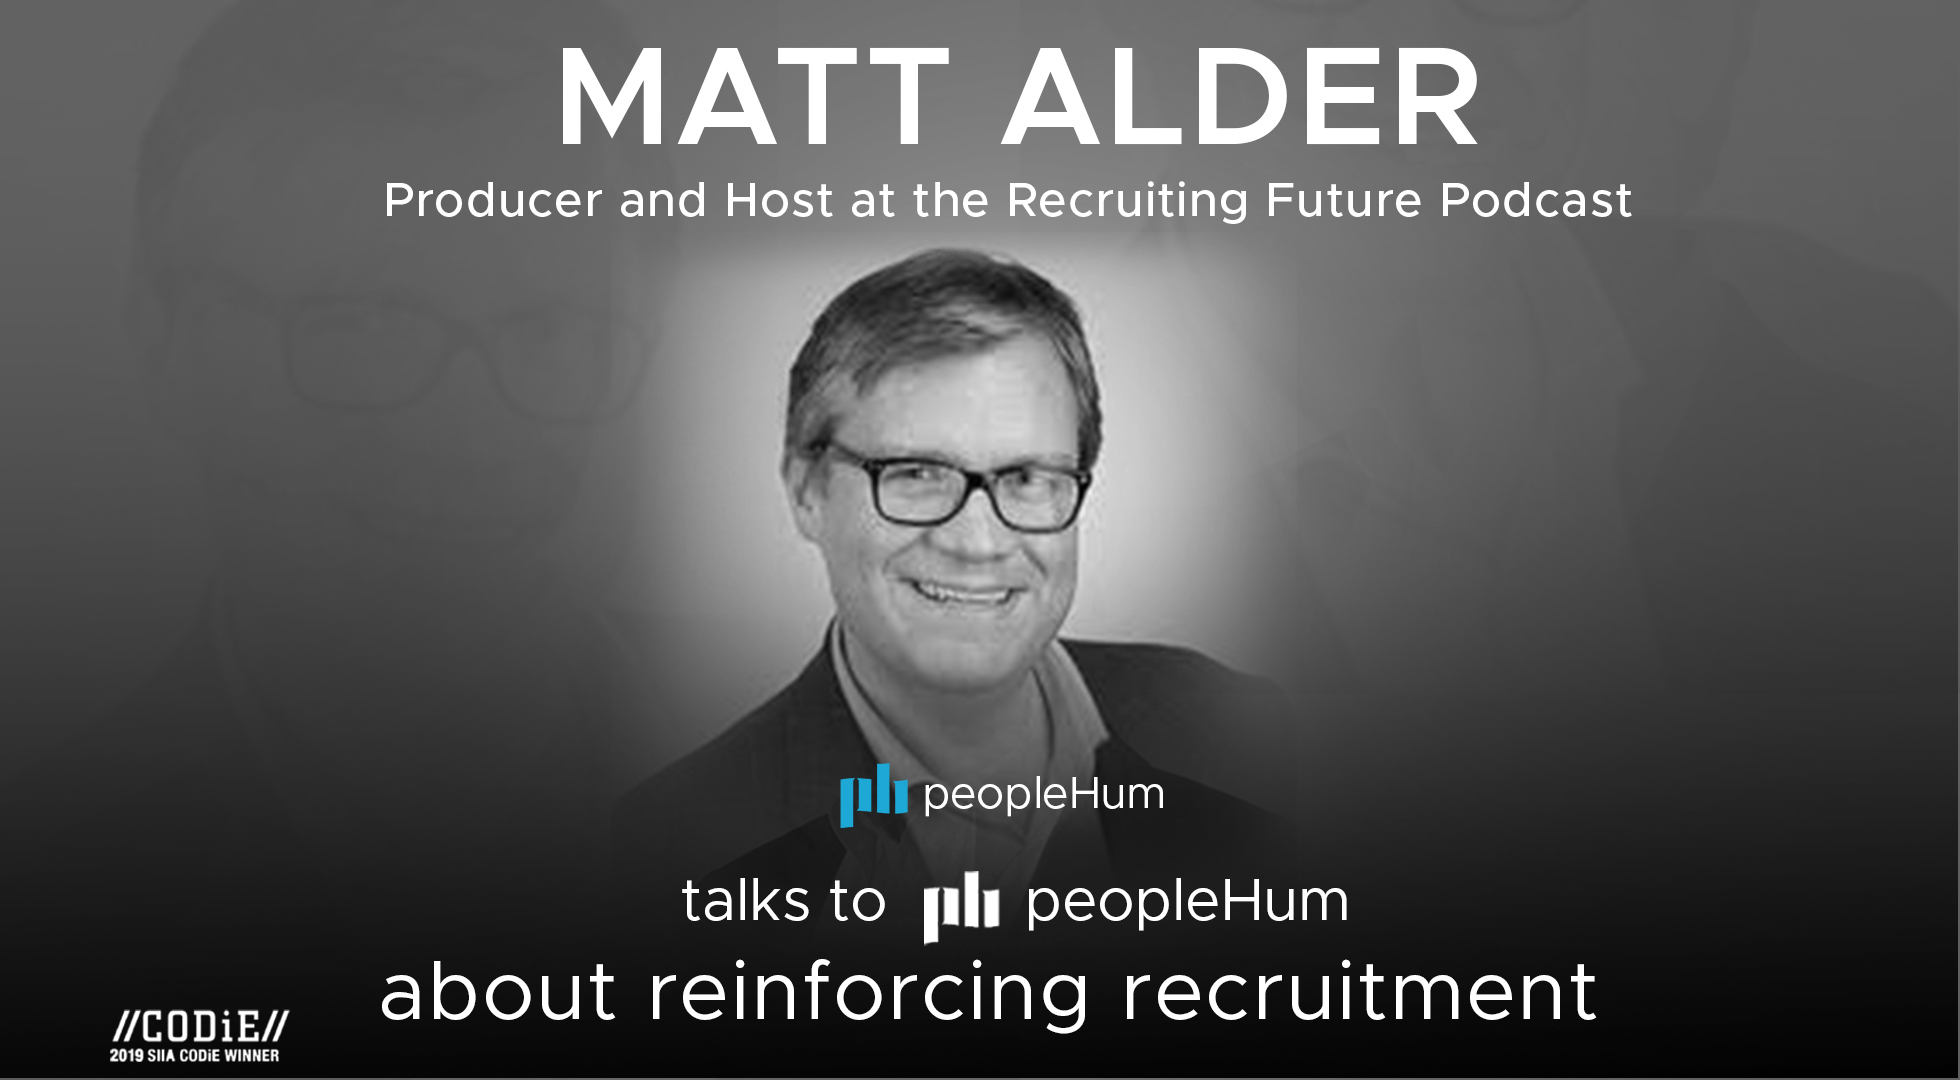 Reinforcing recruitment at the workplace - Matt Alder [Interview]